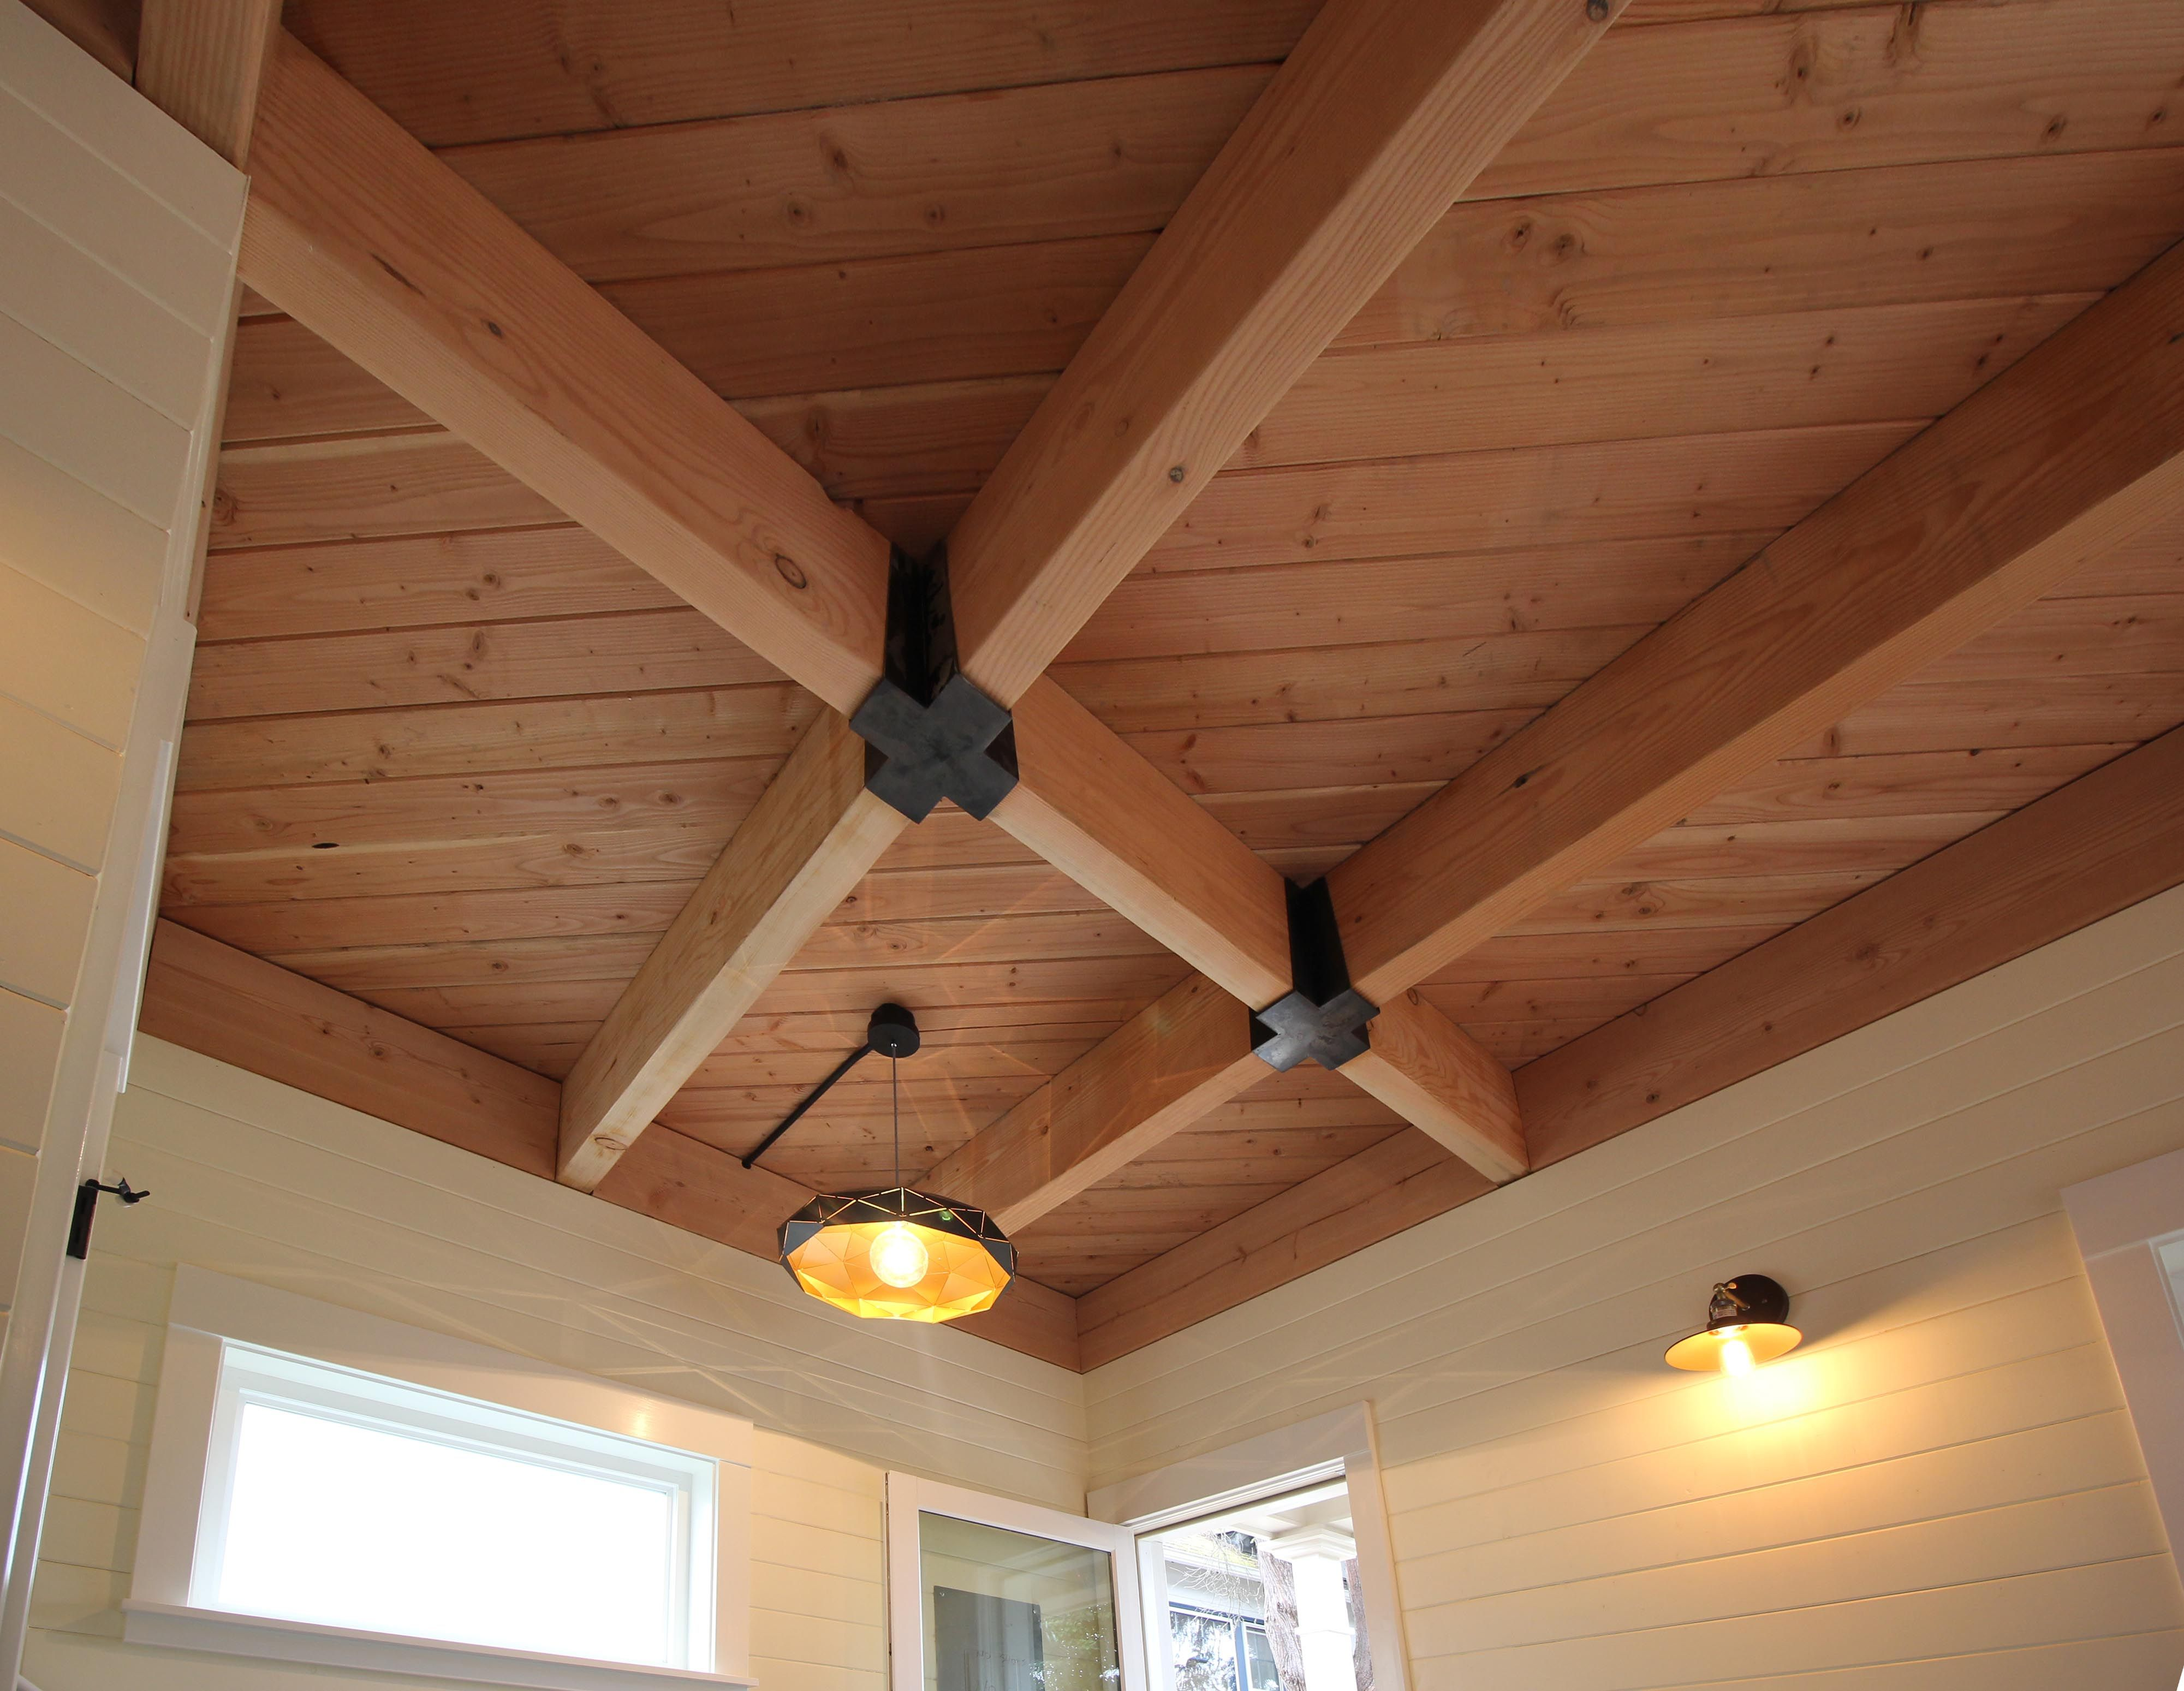 Exposed Fir T G Ceilings With Beams And Custom Joist Hangers Shiplap Clad Walls